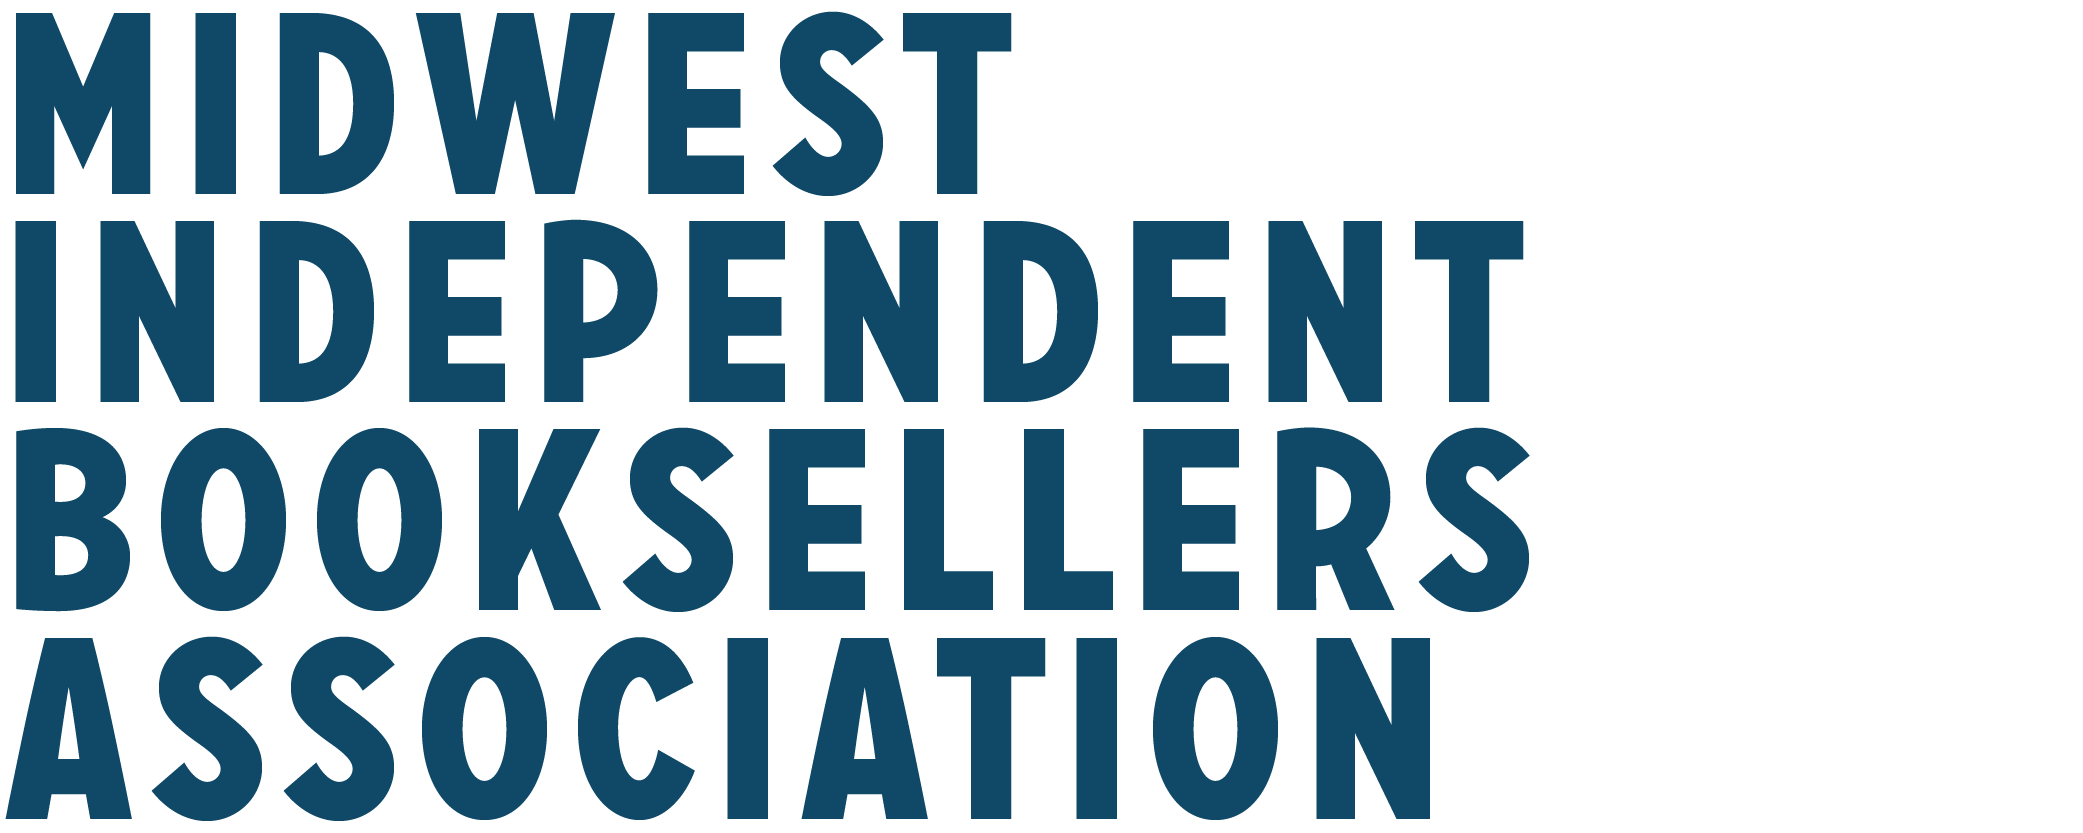 Midwest Independent Booksellers Association Logo